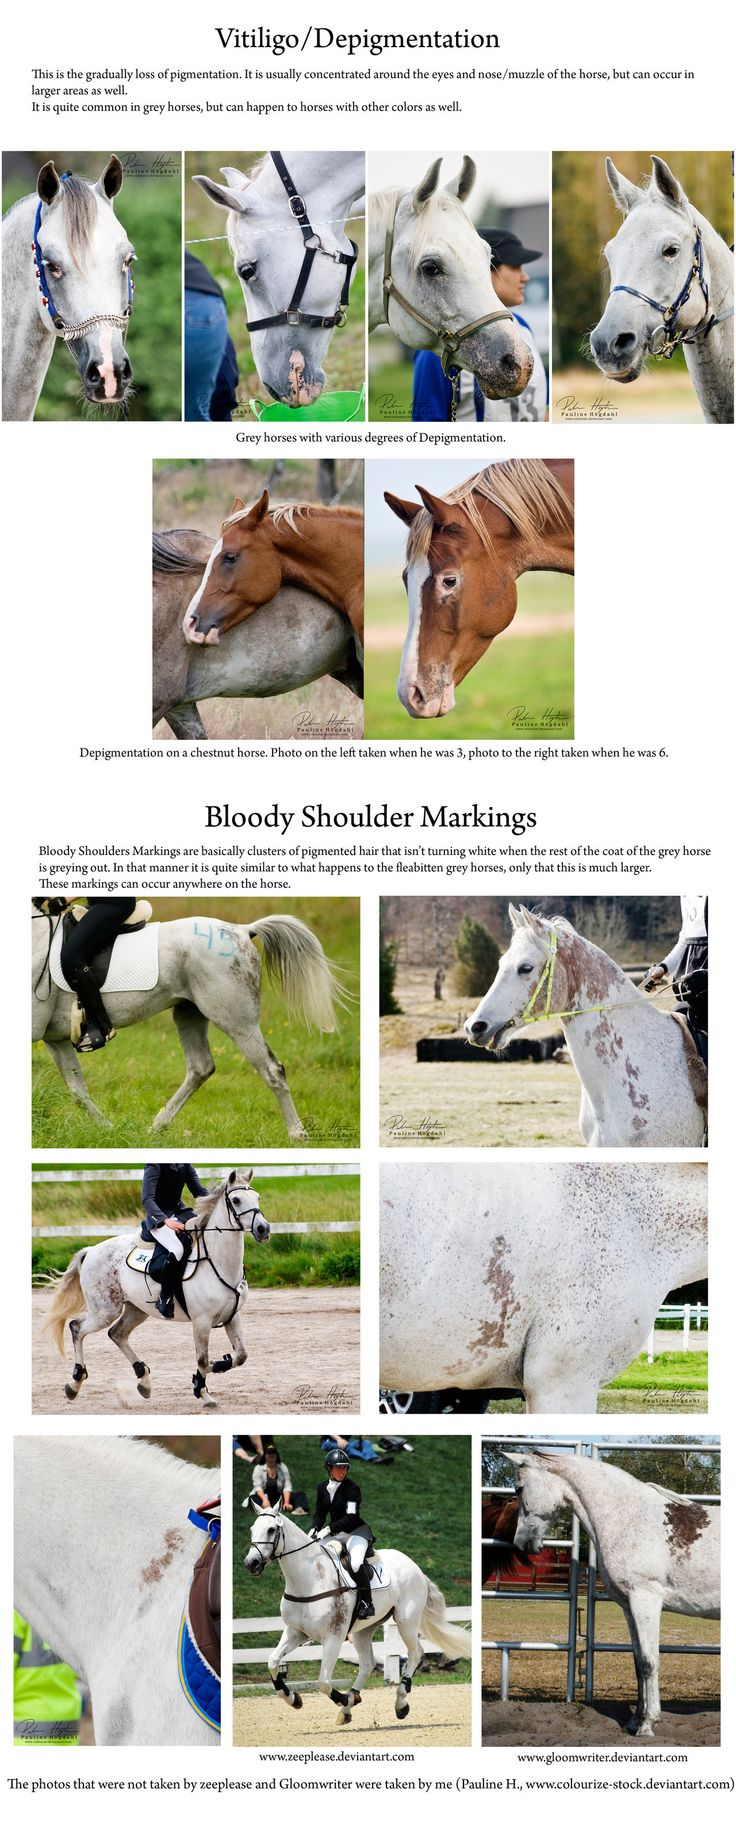 99 best pelajes de los caballos images on pinterest beautiful vitiligo and bloody shoulder markings by colourize stock on deviantart color chartsshouldergeneticshealthbeautiful horsesdeviantartanimalpretty nvjuhfo Choice Image